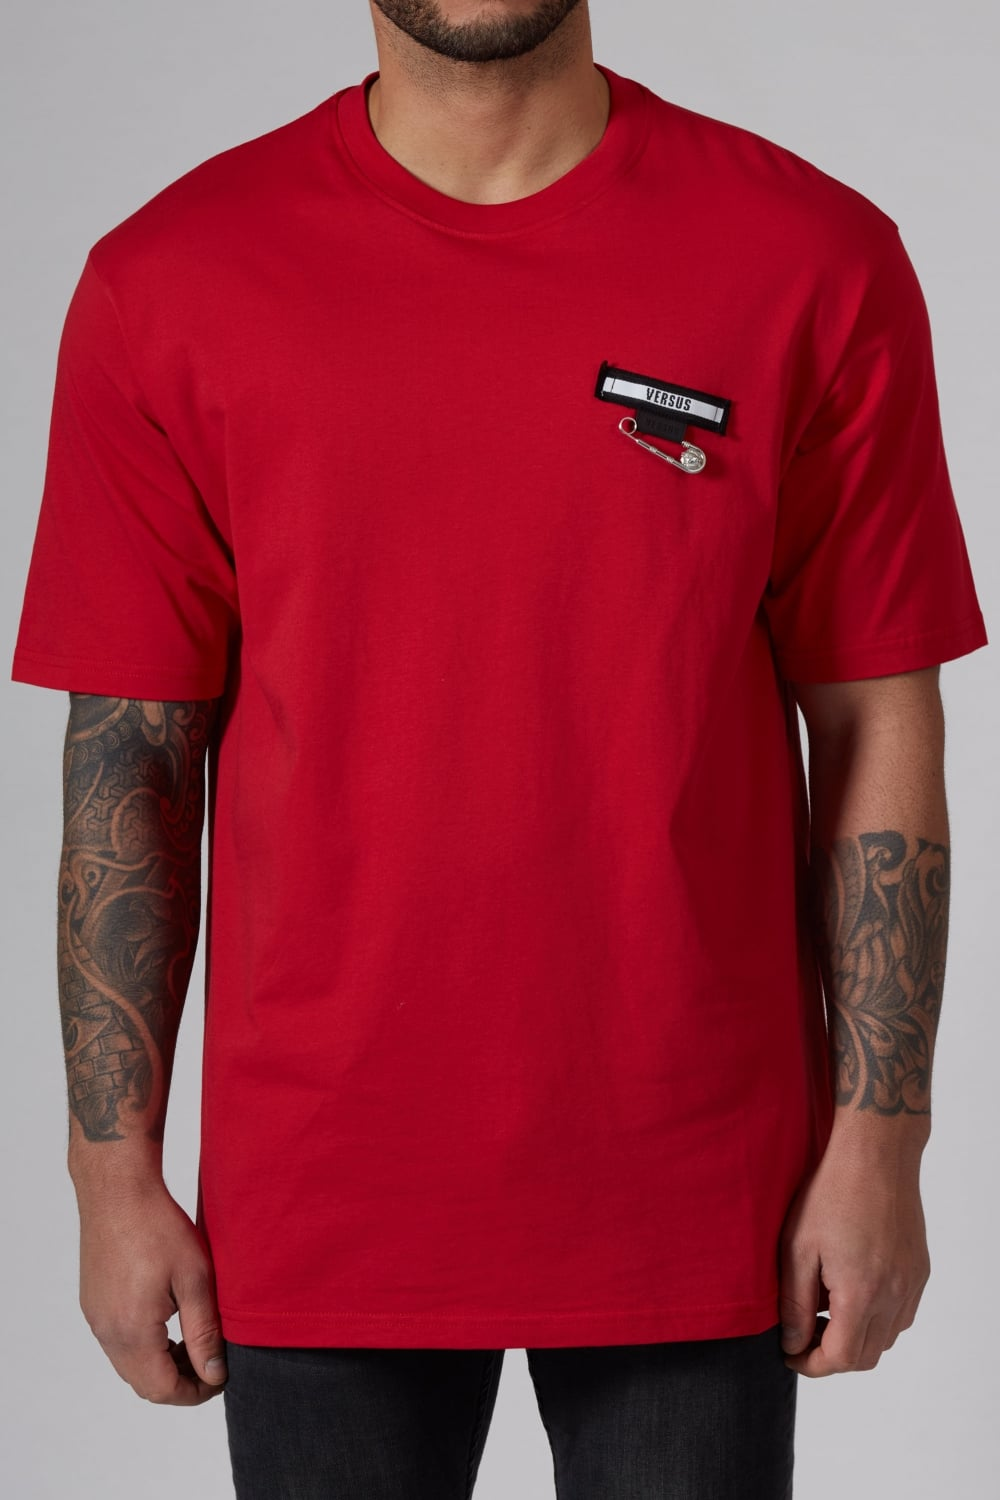 Versus Versace   Safety Pin T-Shirt Red   Intro d3f1ef1f99b